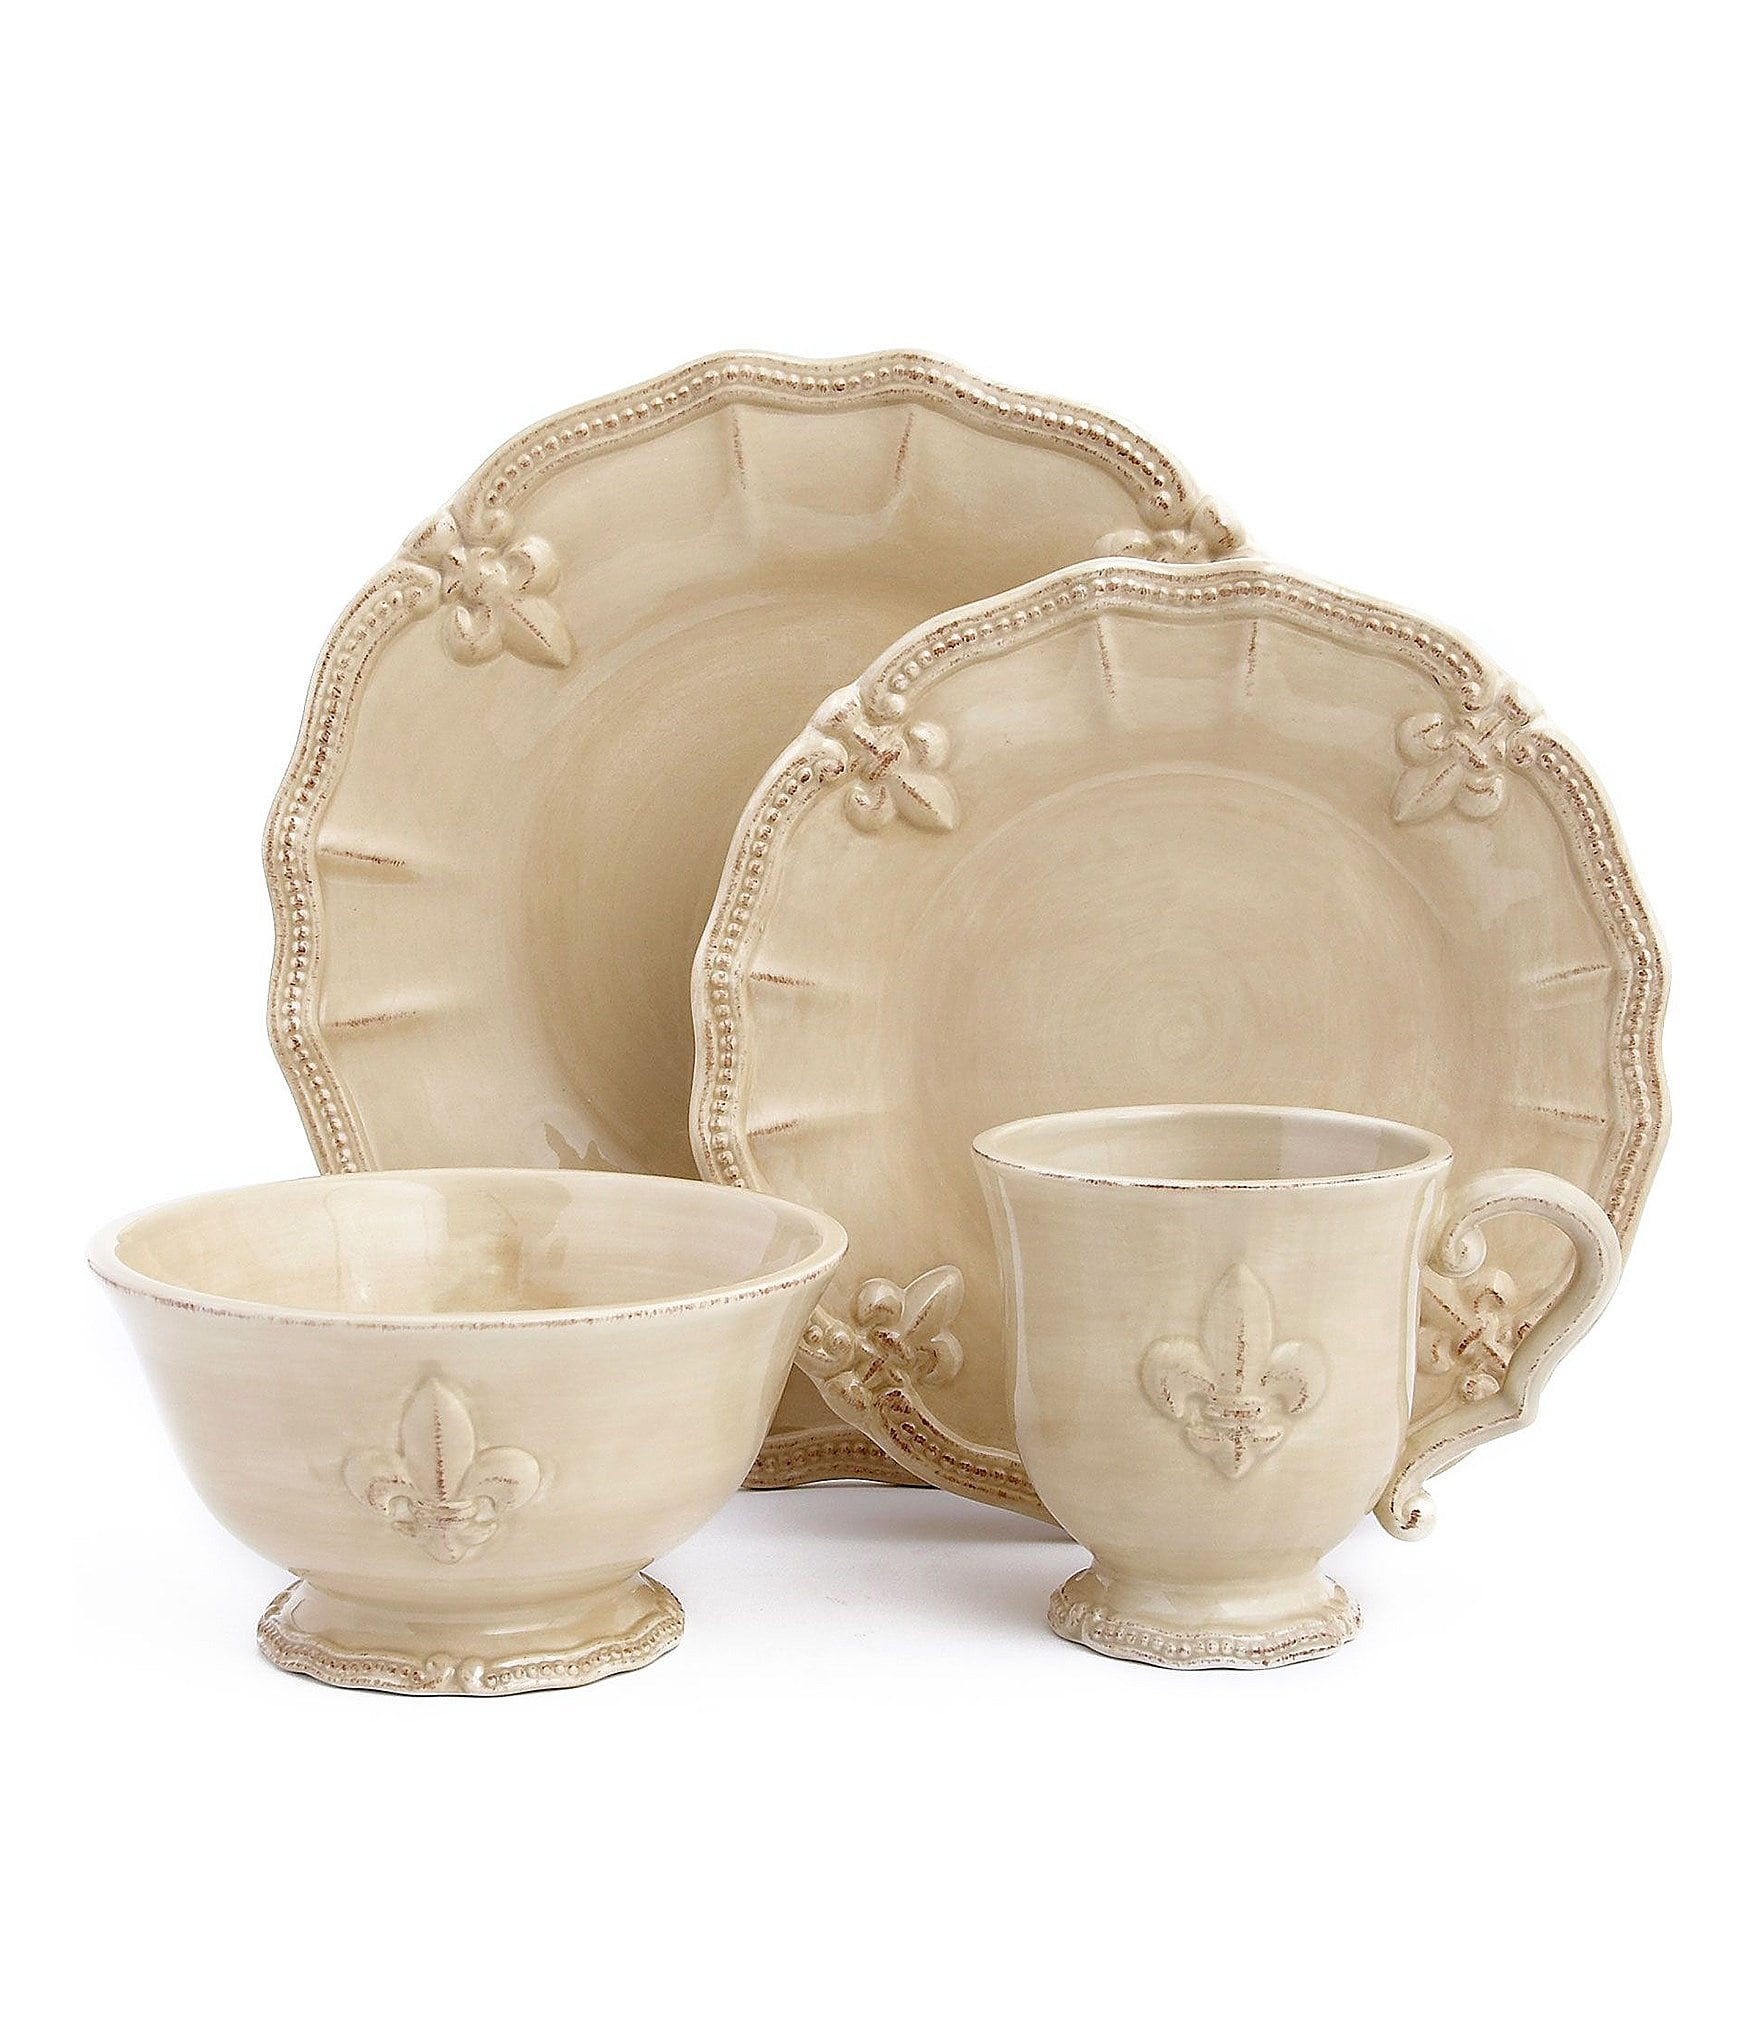 sc 1 st  Dillard\u0027s & Casual Everyday Dinnerware: Plates  Dishes \u0026 Sets | Dillards